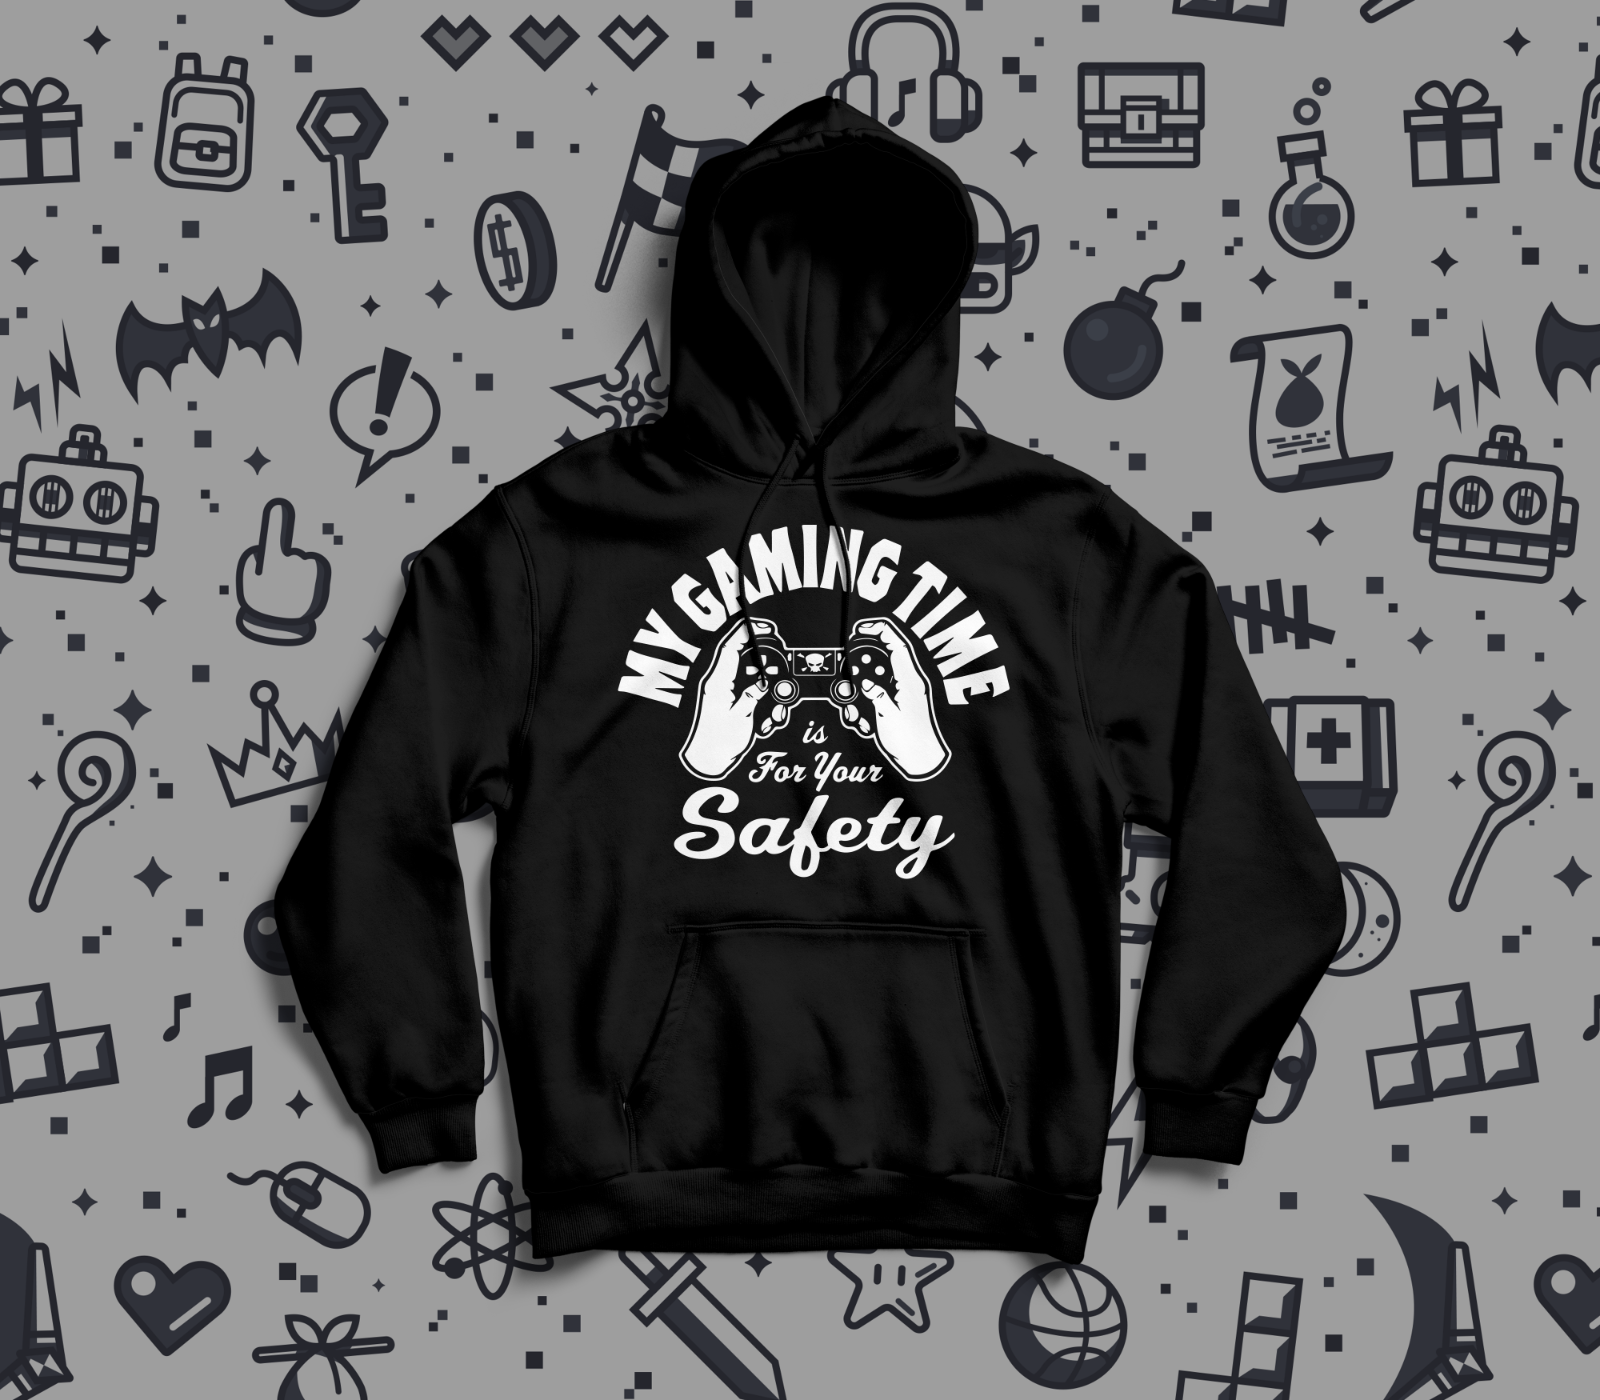 My Gaming Time Is For Your Safety Hoodie Christmas Birthday Gift Present Funny